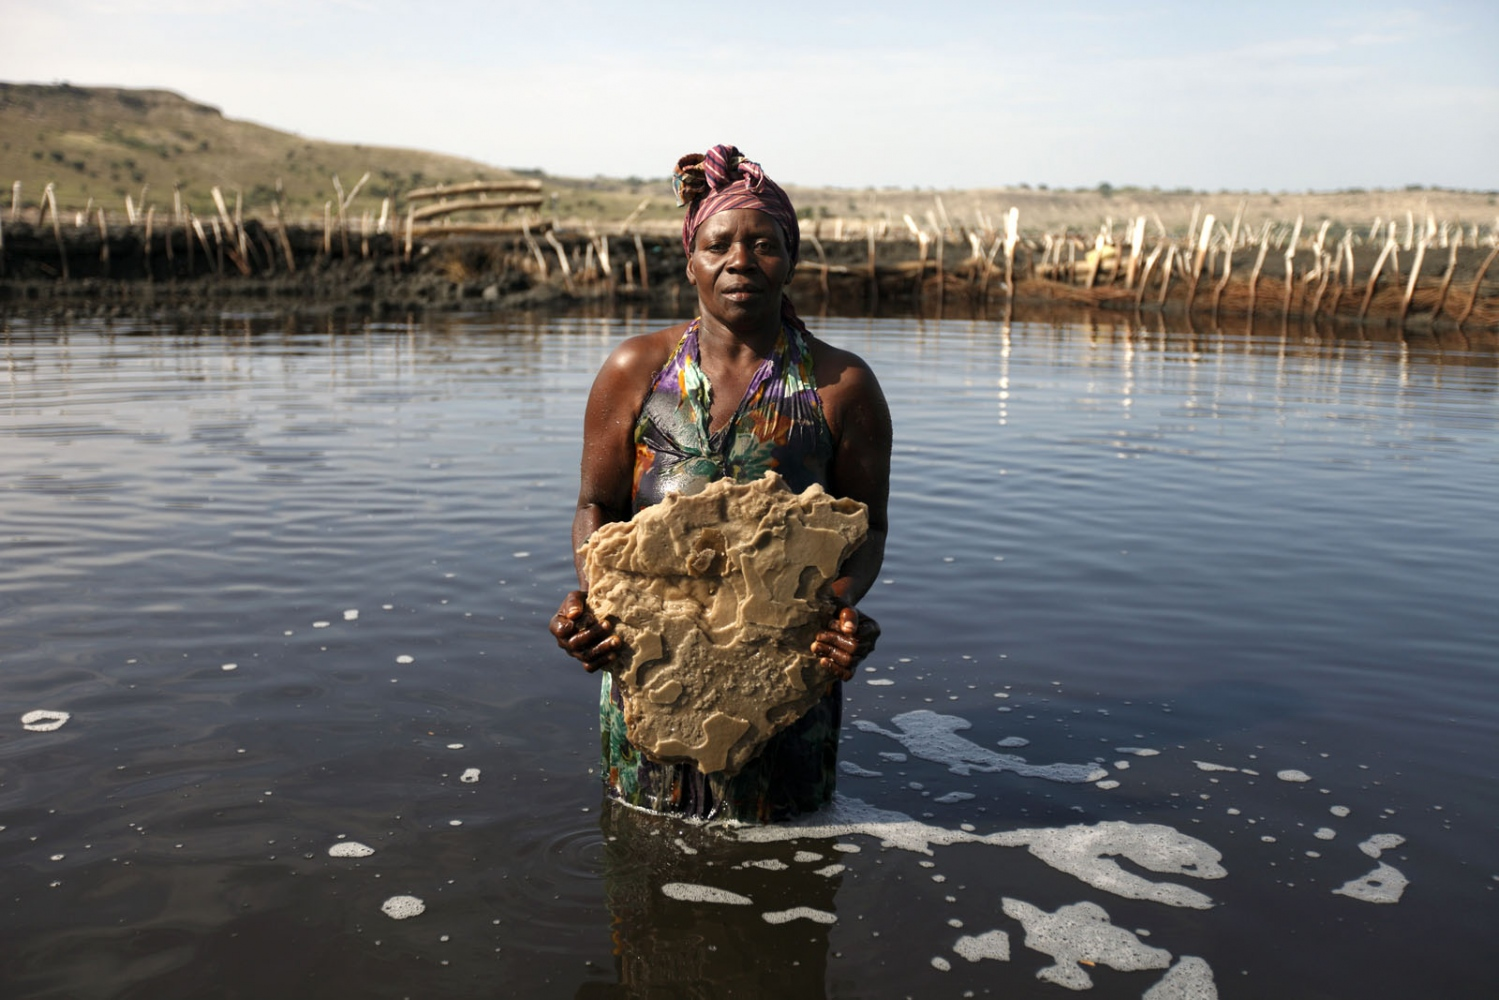 A salt worker holds a huge slab of salt she pulled out of Lake Katwe in Western Uganda. The lake sits in an extinct volcano and the salt forms at the bottom of the lake where it must be broken in to manageable sized pieces and brought to the surface. Full of pollutants and blistering heat makes working in the lake very hard. Katwe, Uganda.